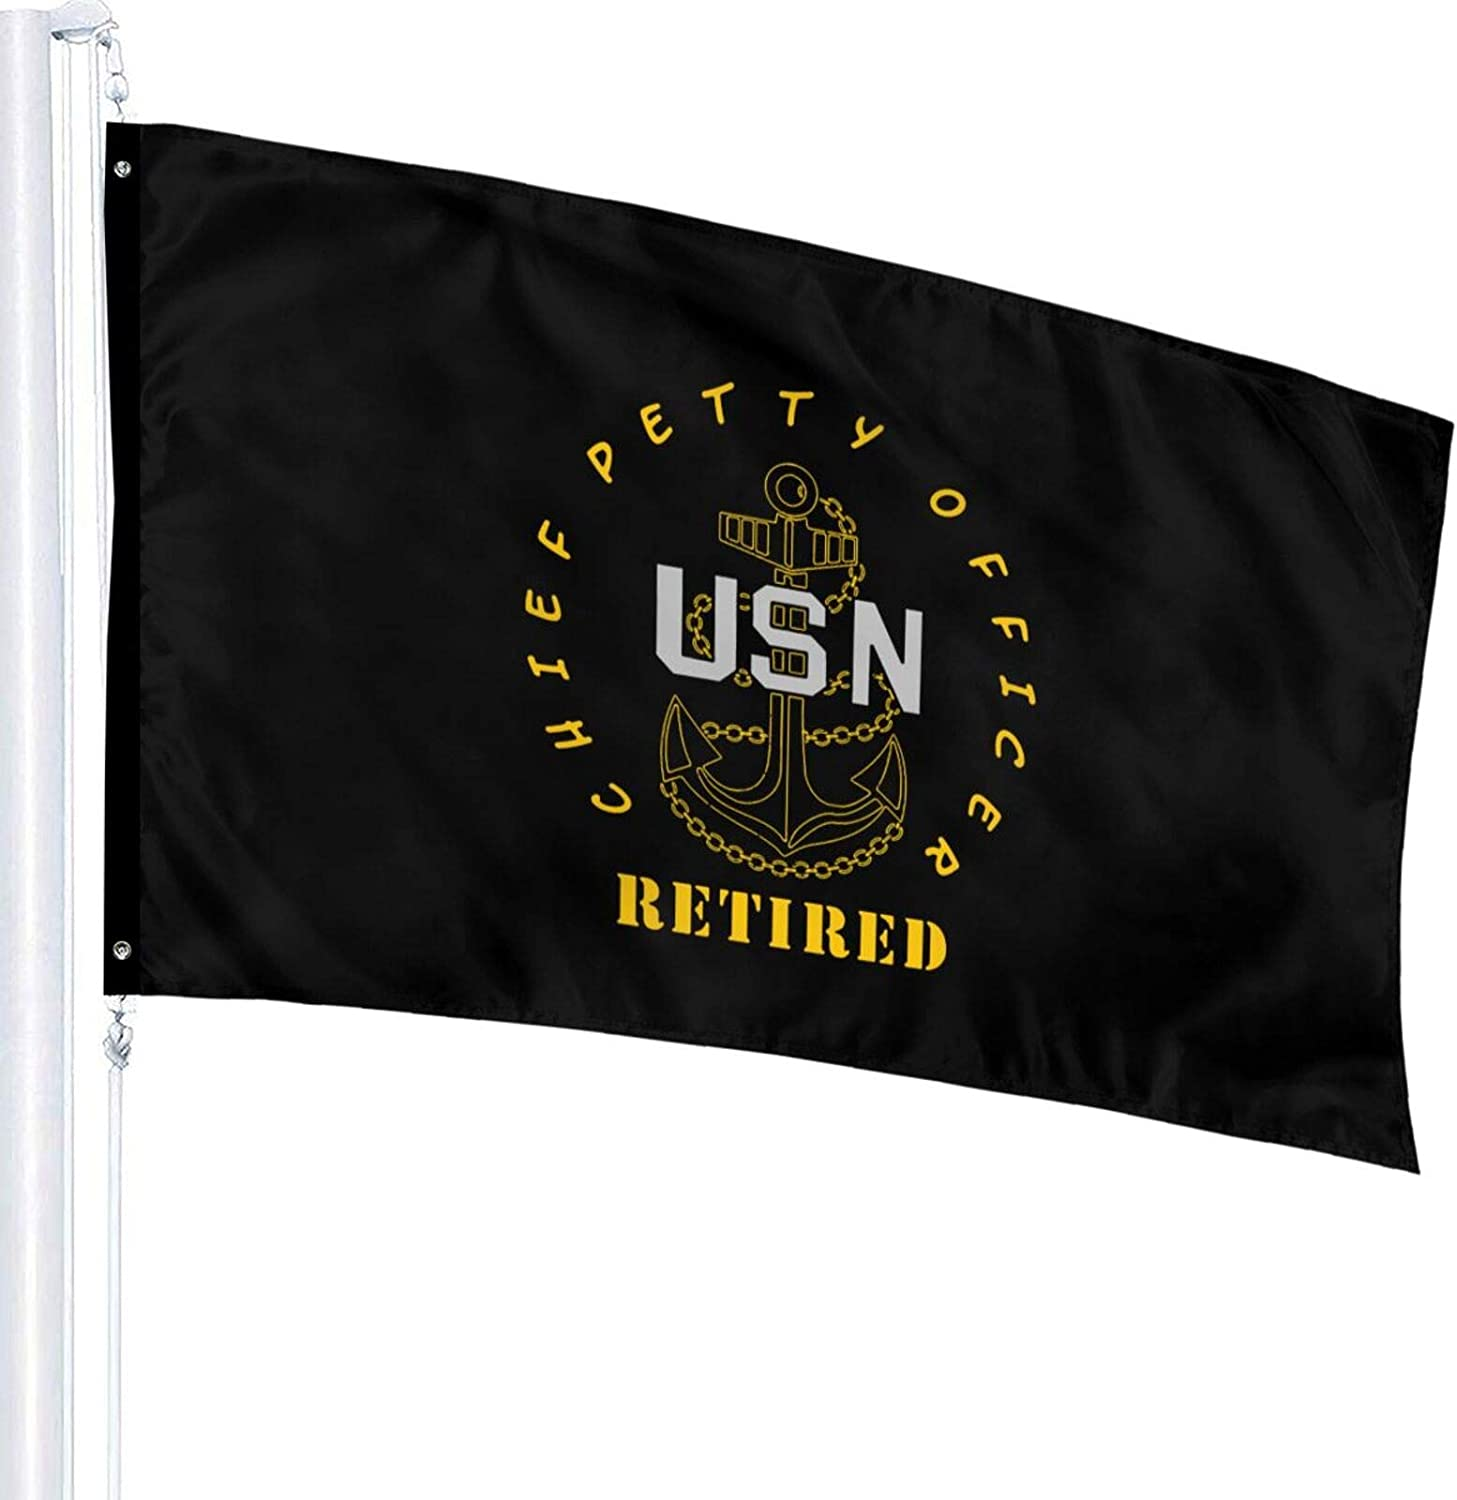 Zordalating Us Navy - CPO Chief Petty Officer Retired 3x5 Foot Flag Outdoor Flags 100% Single-Layer Translucent Polyester 3x5 Ft